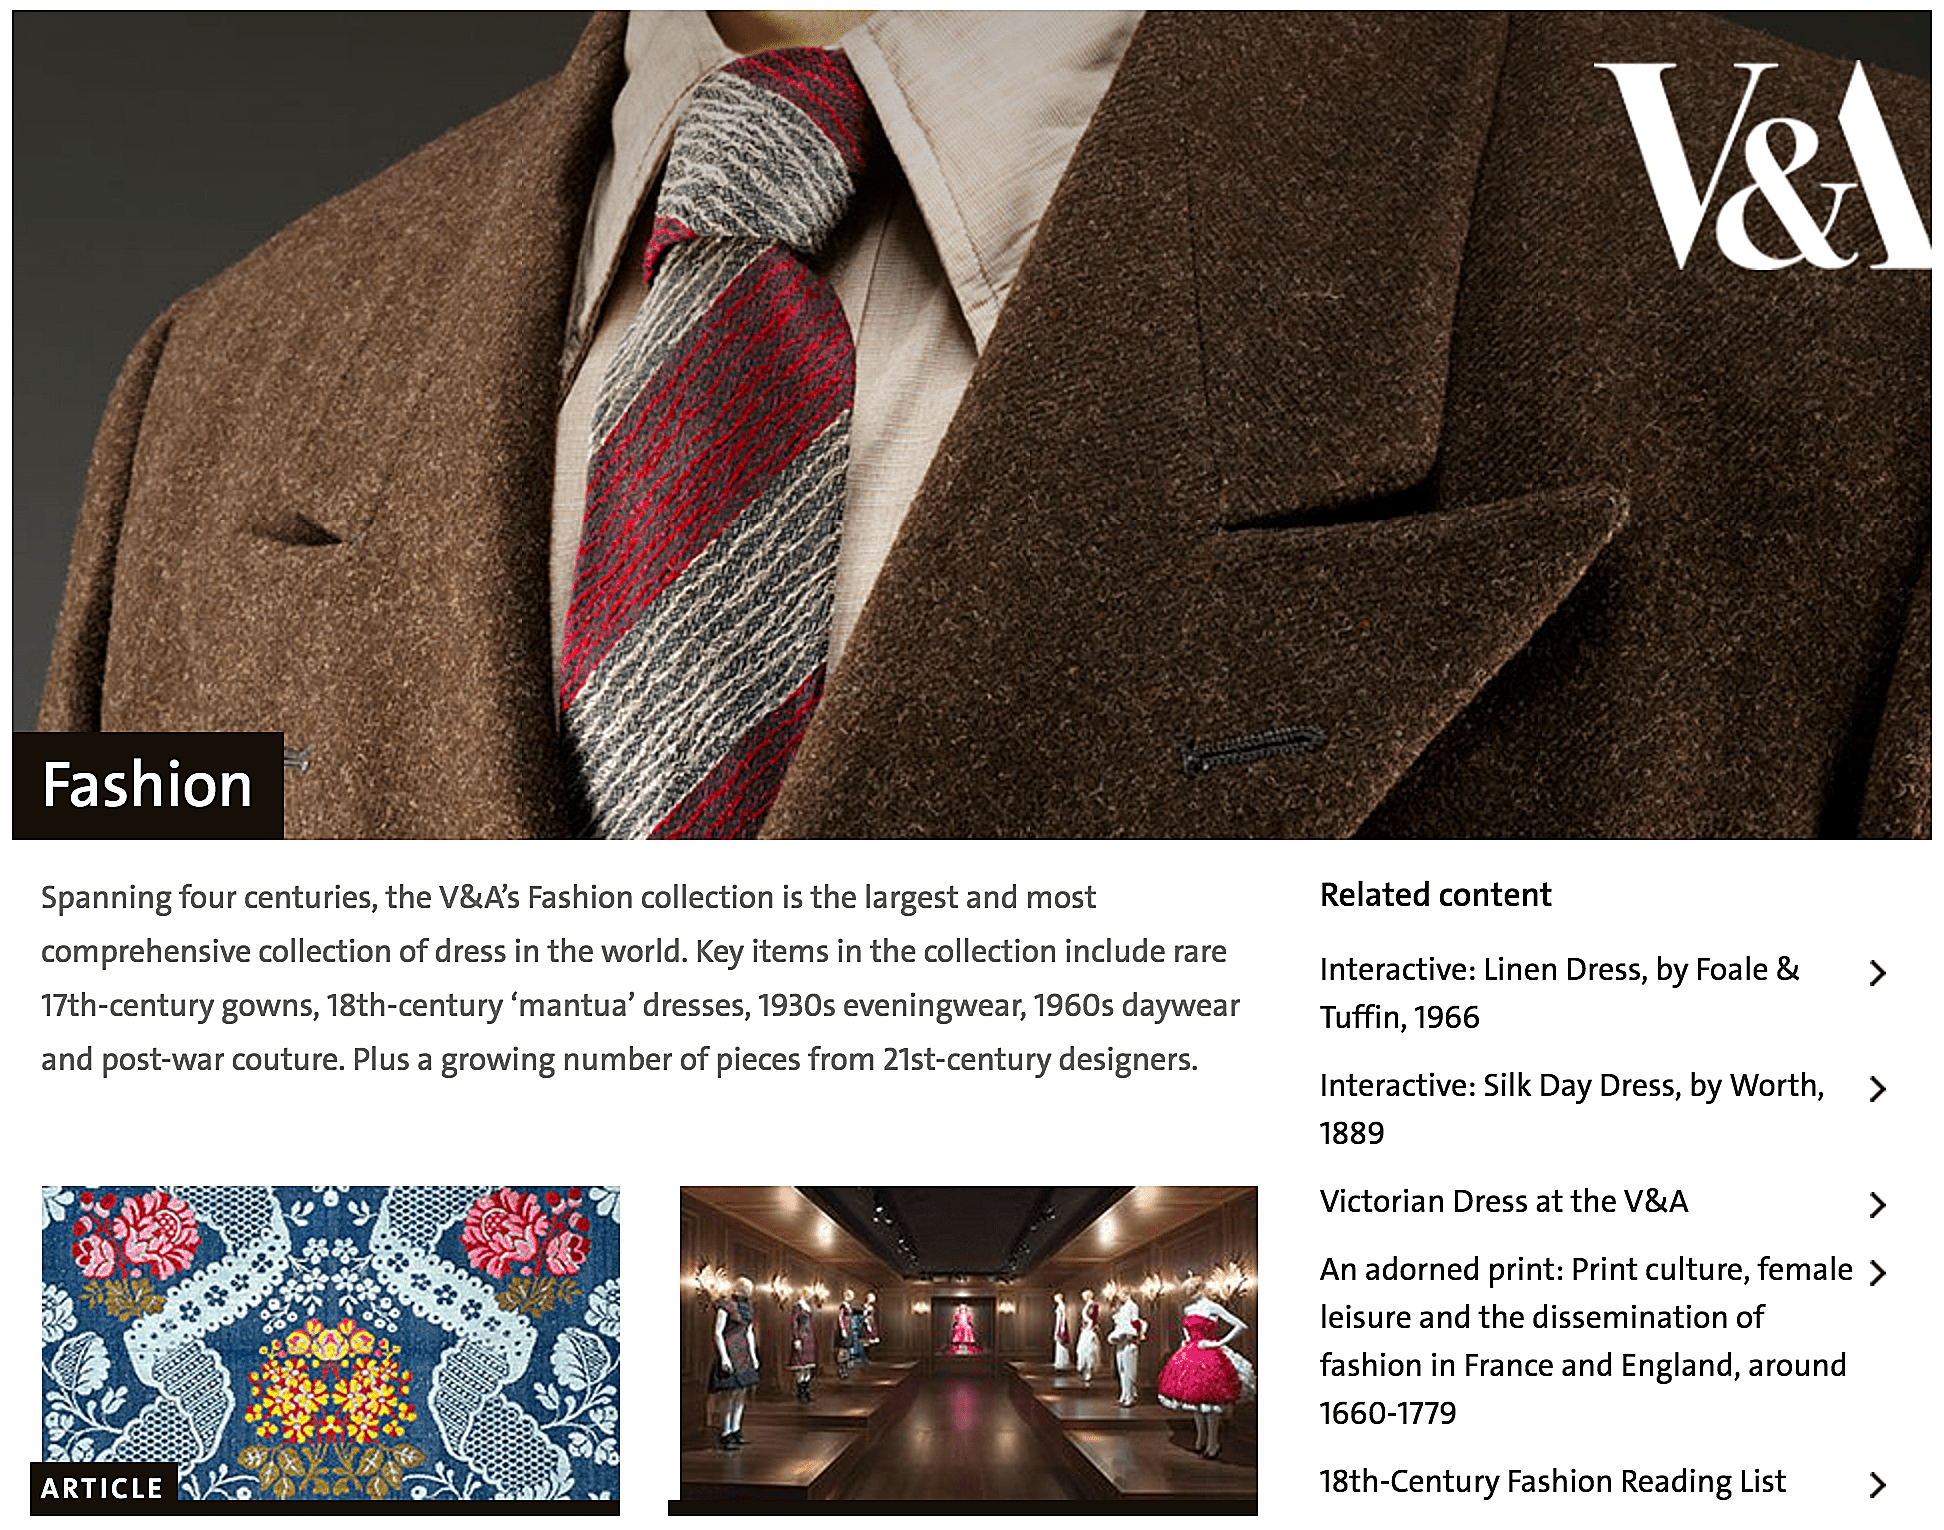 The Victoria and Albert Museum in London has the world's largest collection of dress , spanning four centuries.